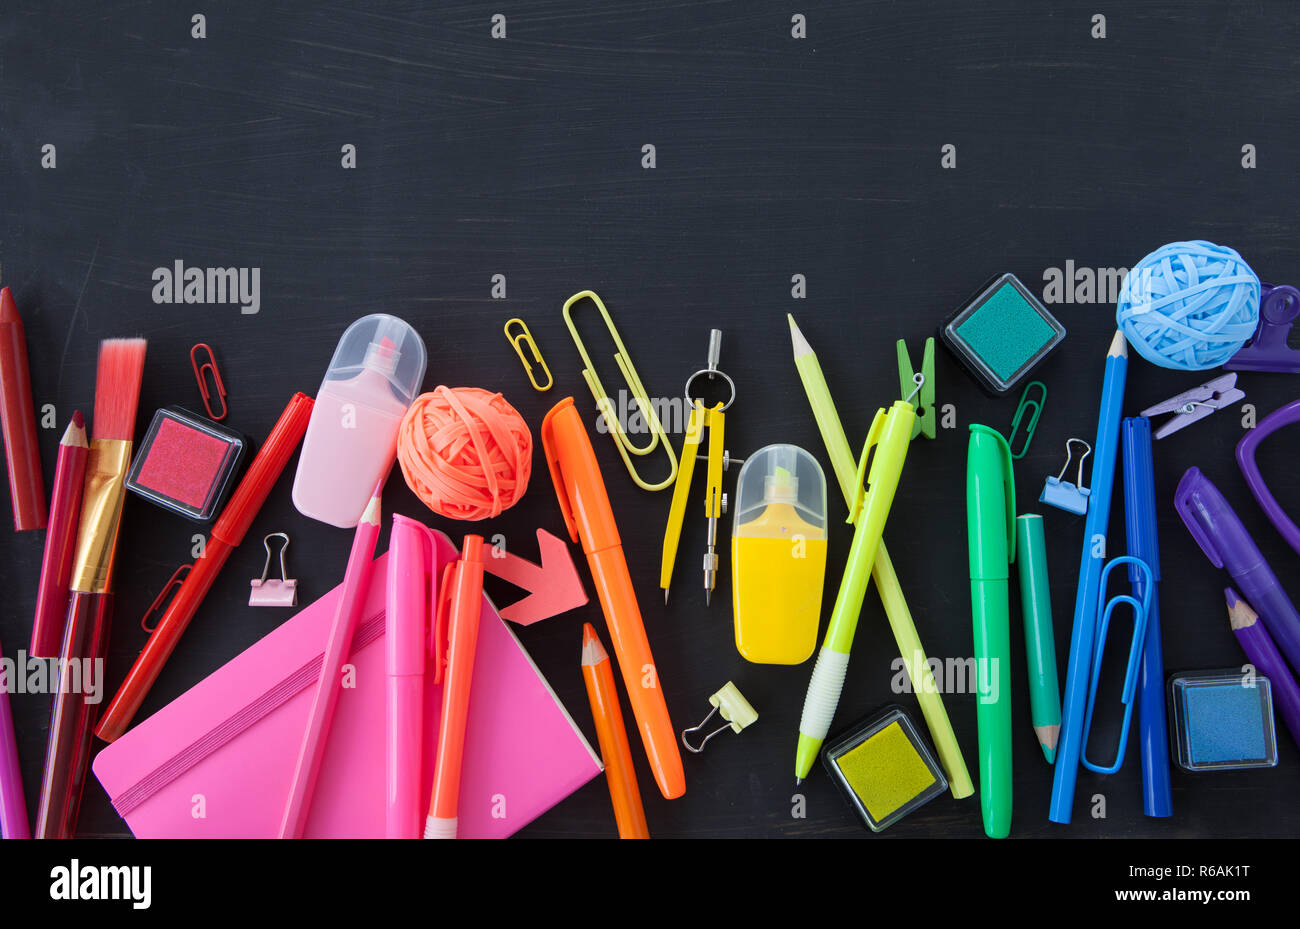 Colorful School  Office Supplies - Stock Image